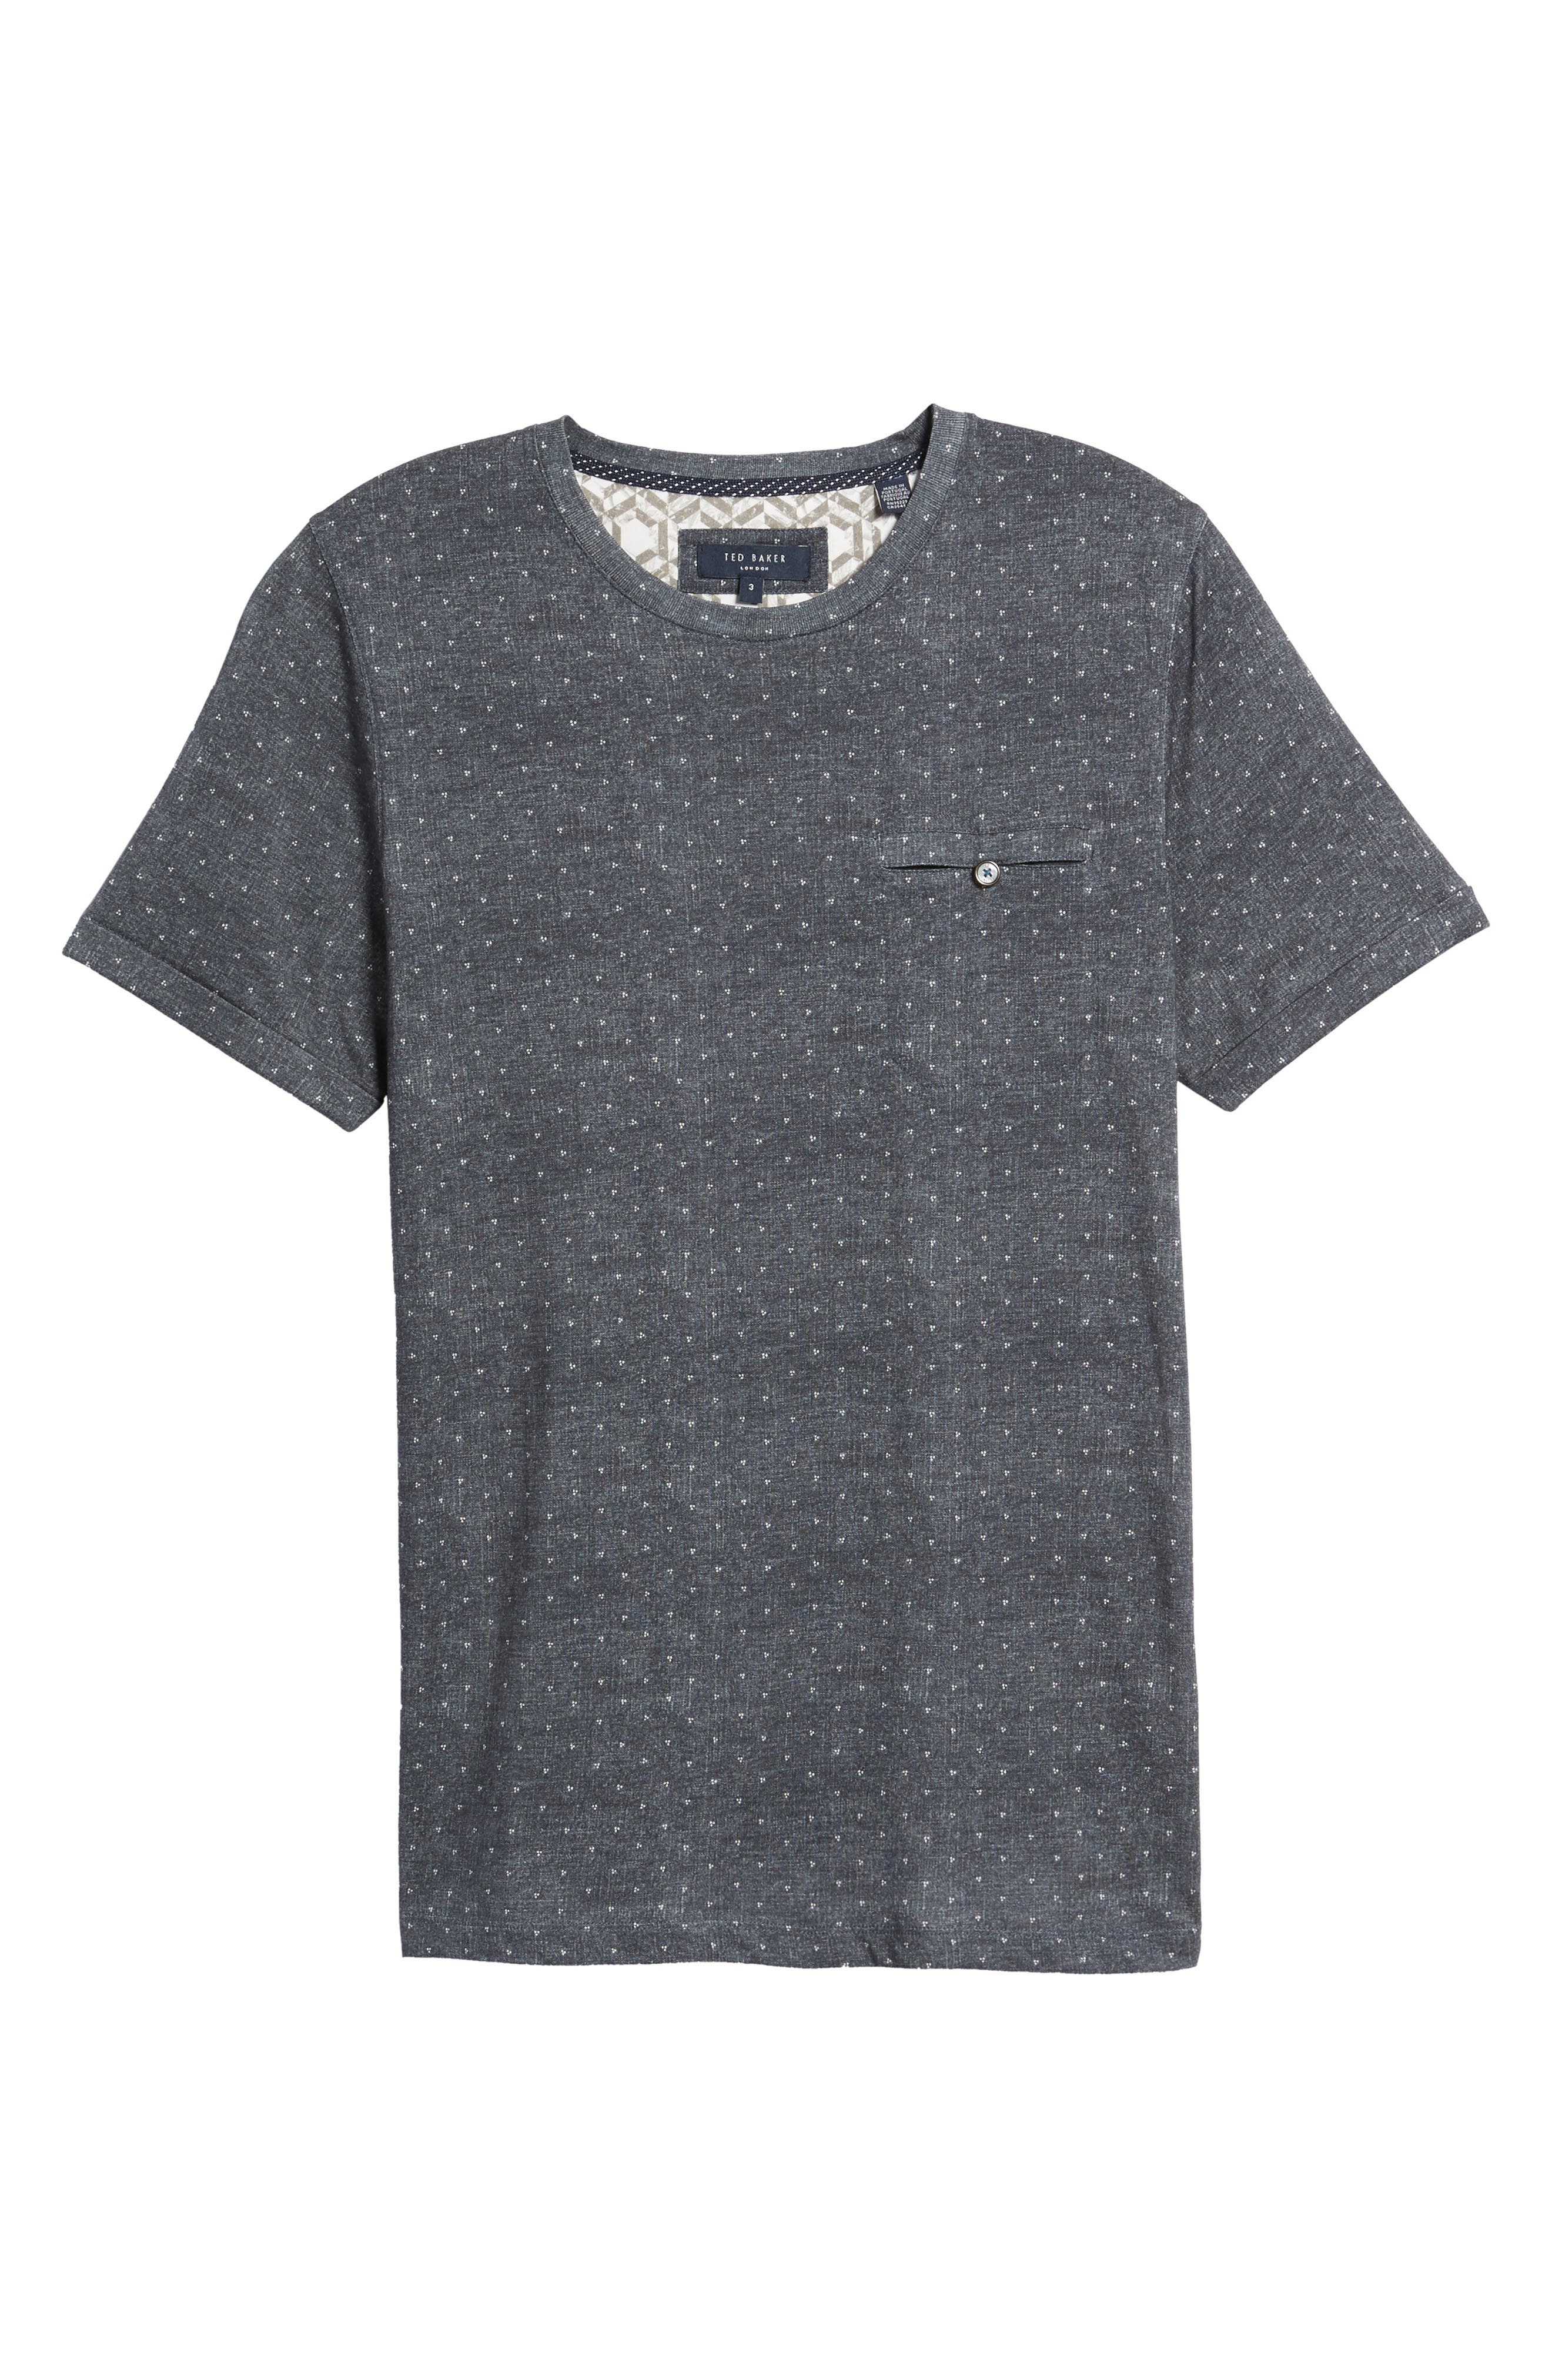 Giovani Modern Slim Fit Print T-Shirt,                             Alternate thumbnail 6, color,                             410